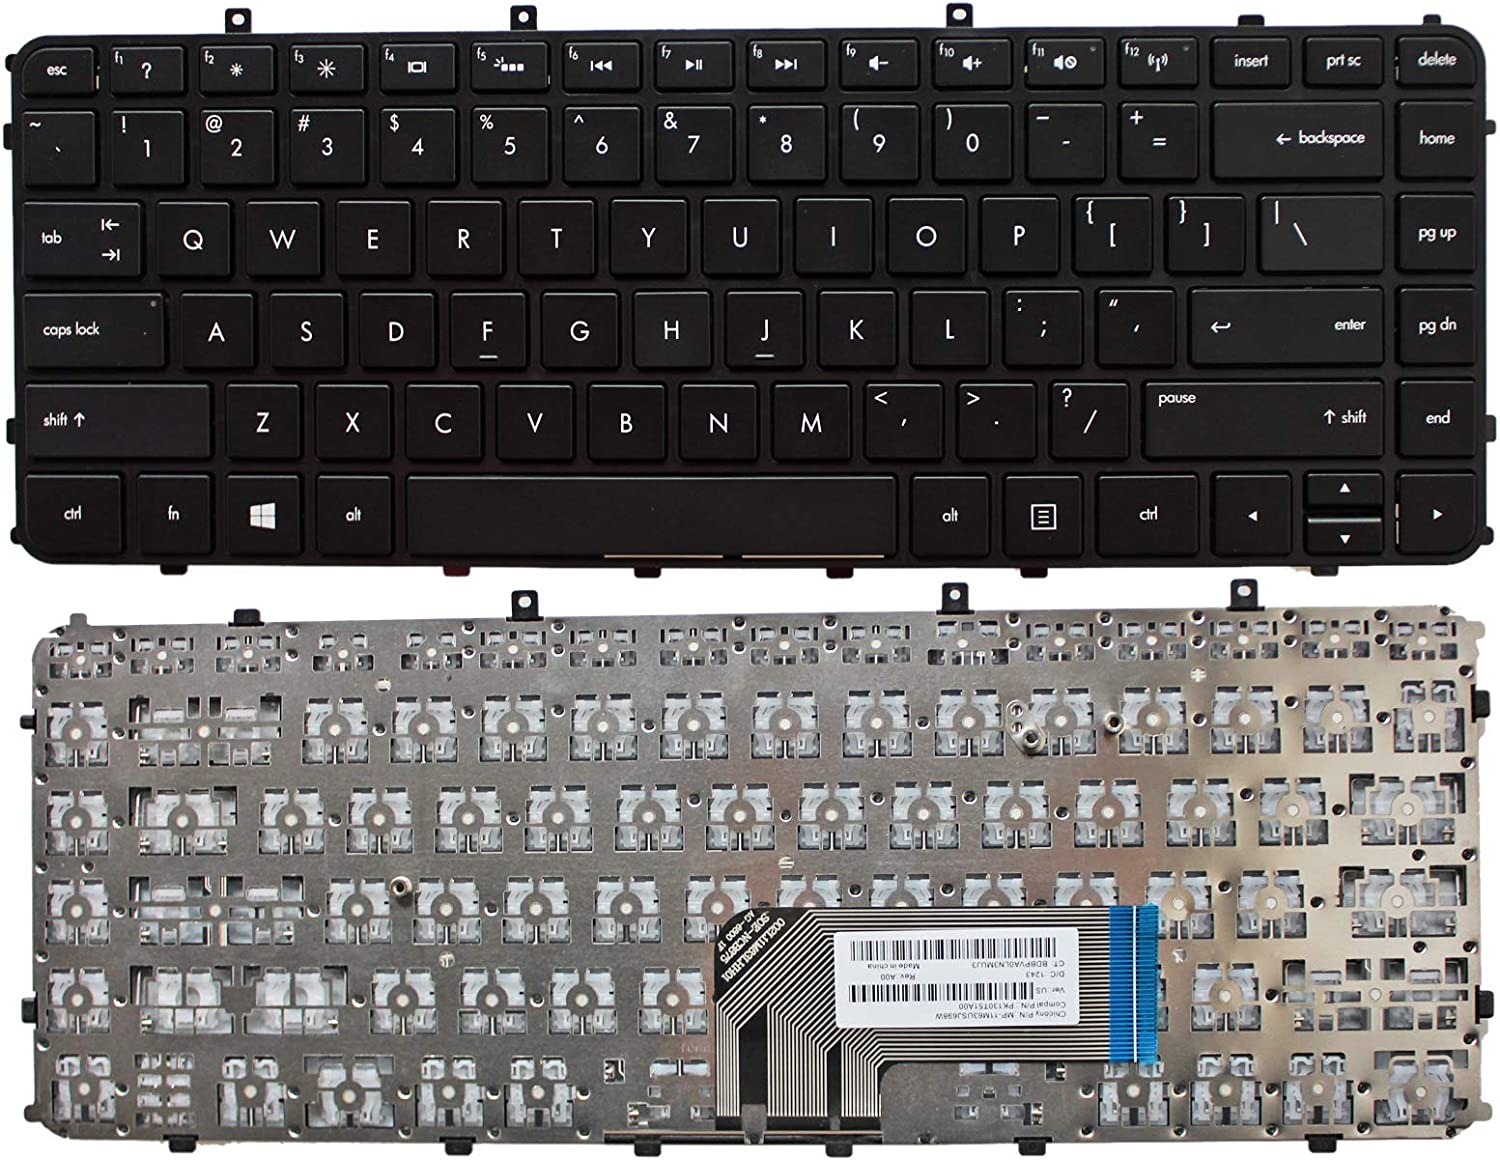 Zahara Laptop US Keyboard Black Without Backlit Replacement for HP Envy 4-1195ca 4-1130us 4-1215dx 4-1115dx 4-1102xx CTO 4t-1100 4-1038nr 4-1043cl 4-1050ca 4-1110us 4-1117nr 4-1105dx 4-1019wm